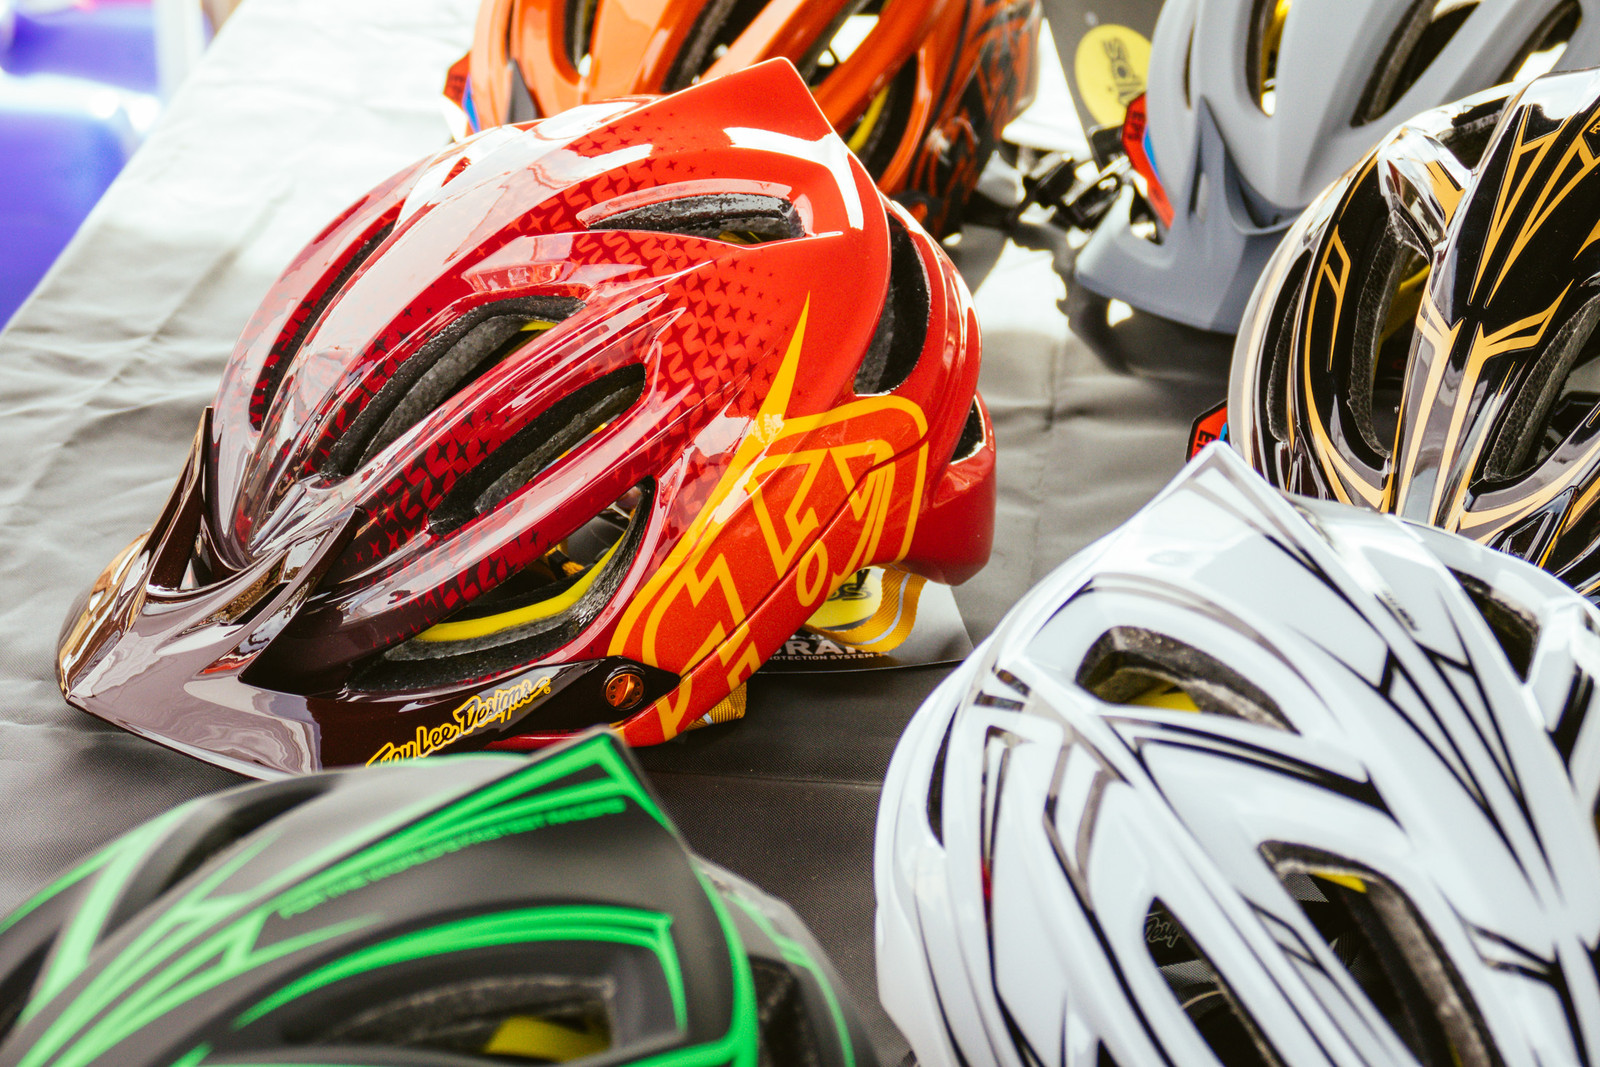 Troy Lee Designs A2 Helmet - PIT BITS - Fresh Products from the Sedona Mountain Bike Festival - Mountain Biking Pictures - Vital MTB